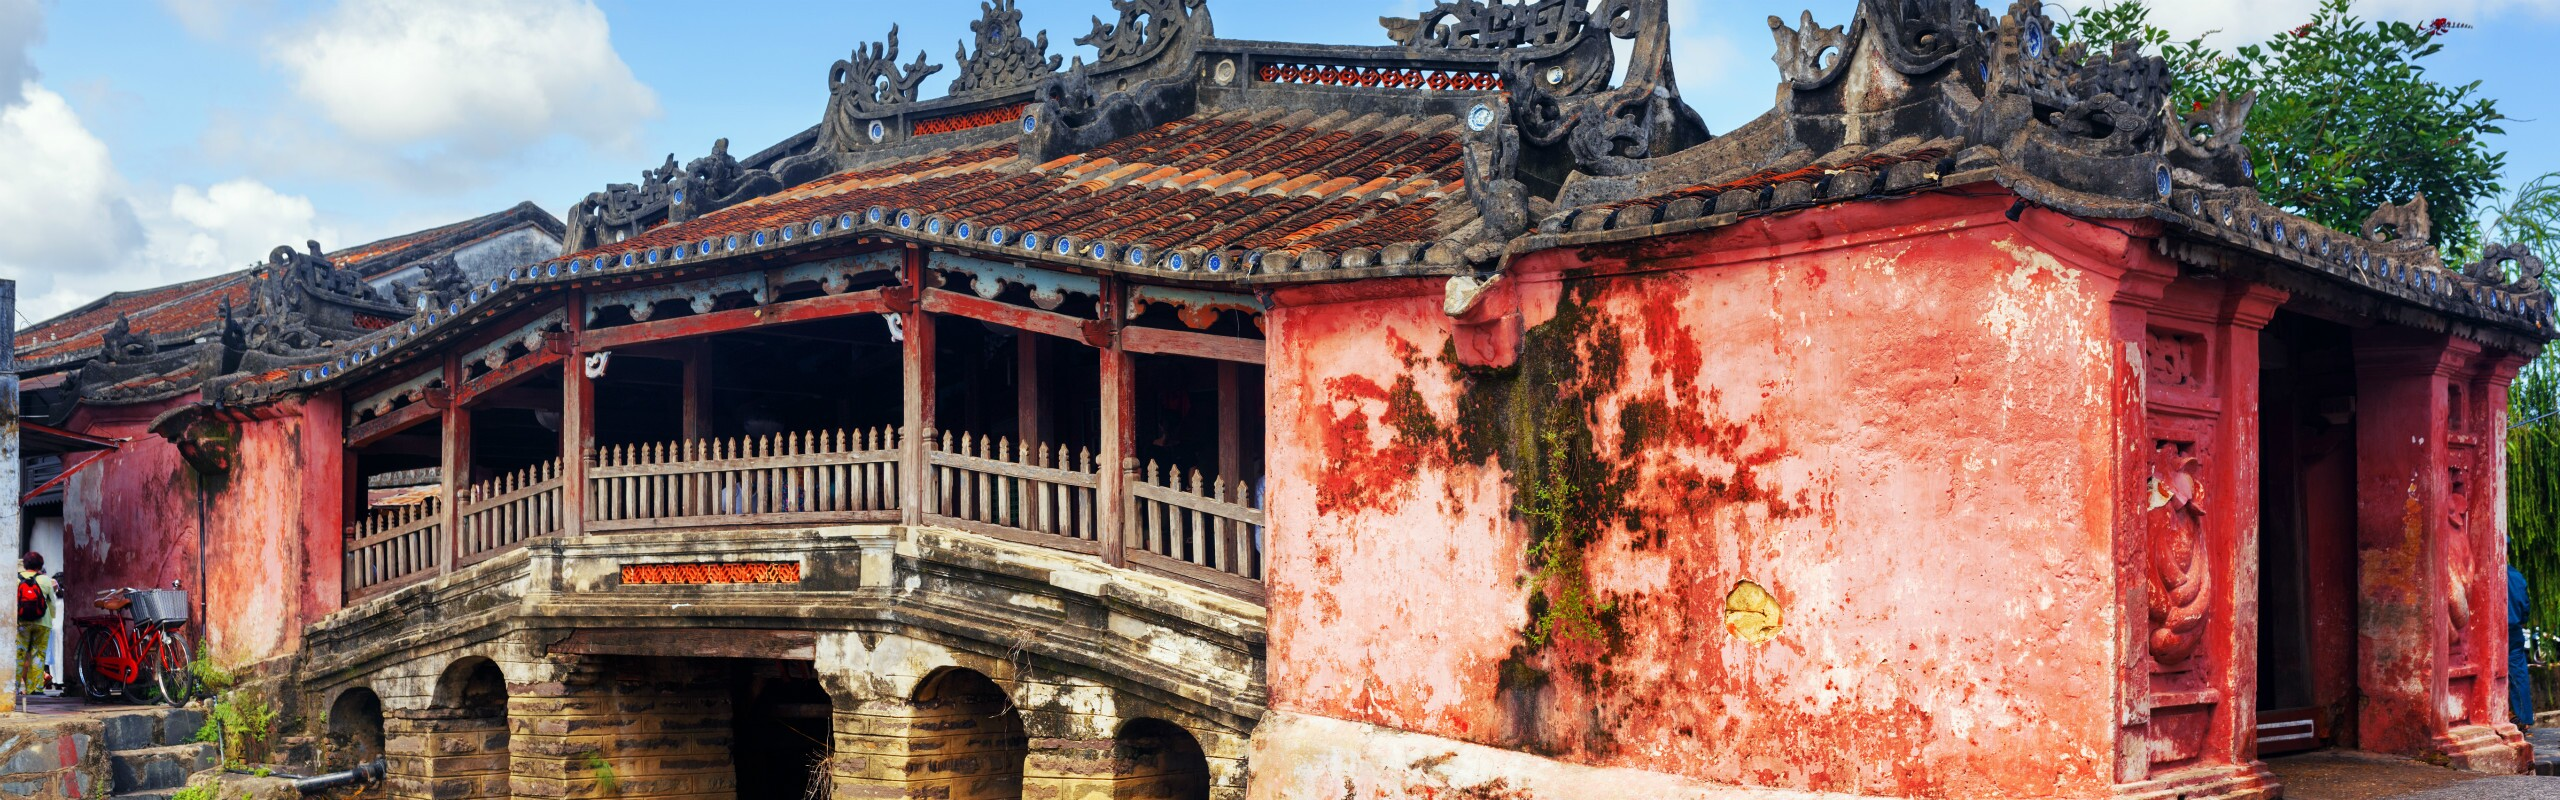 Planning a Trip to Hoi An